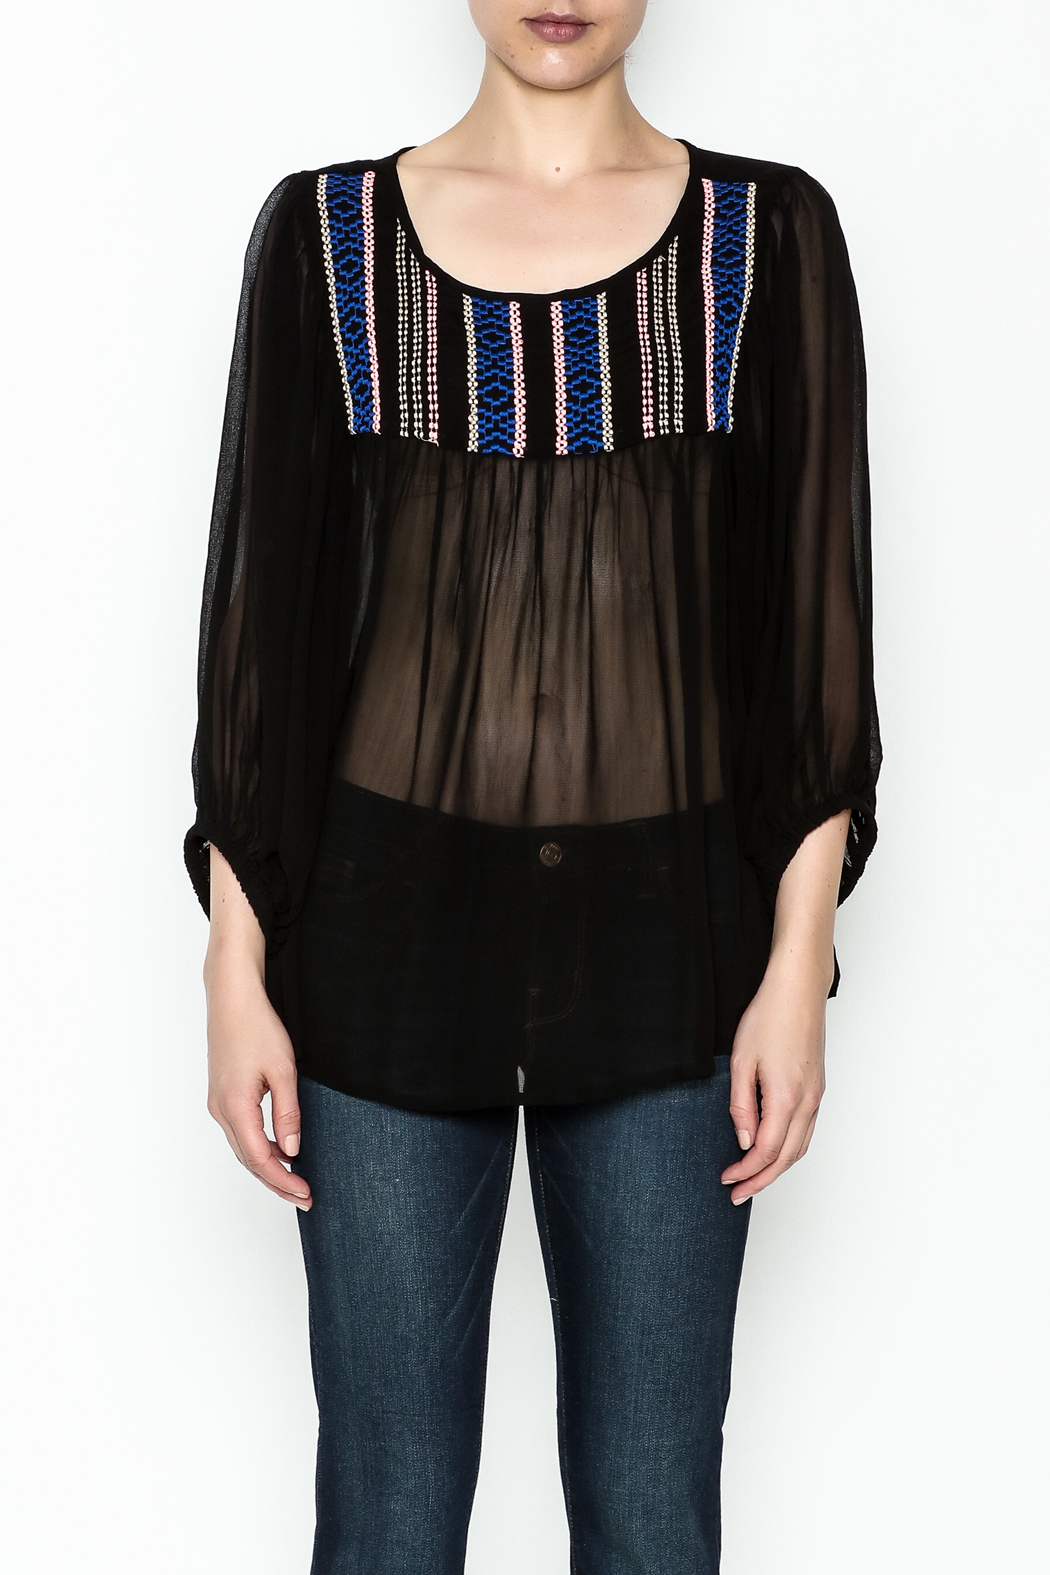 Ivy Jane Black Peasant Top - Front Full Image